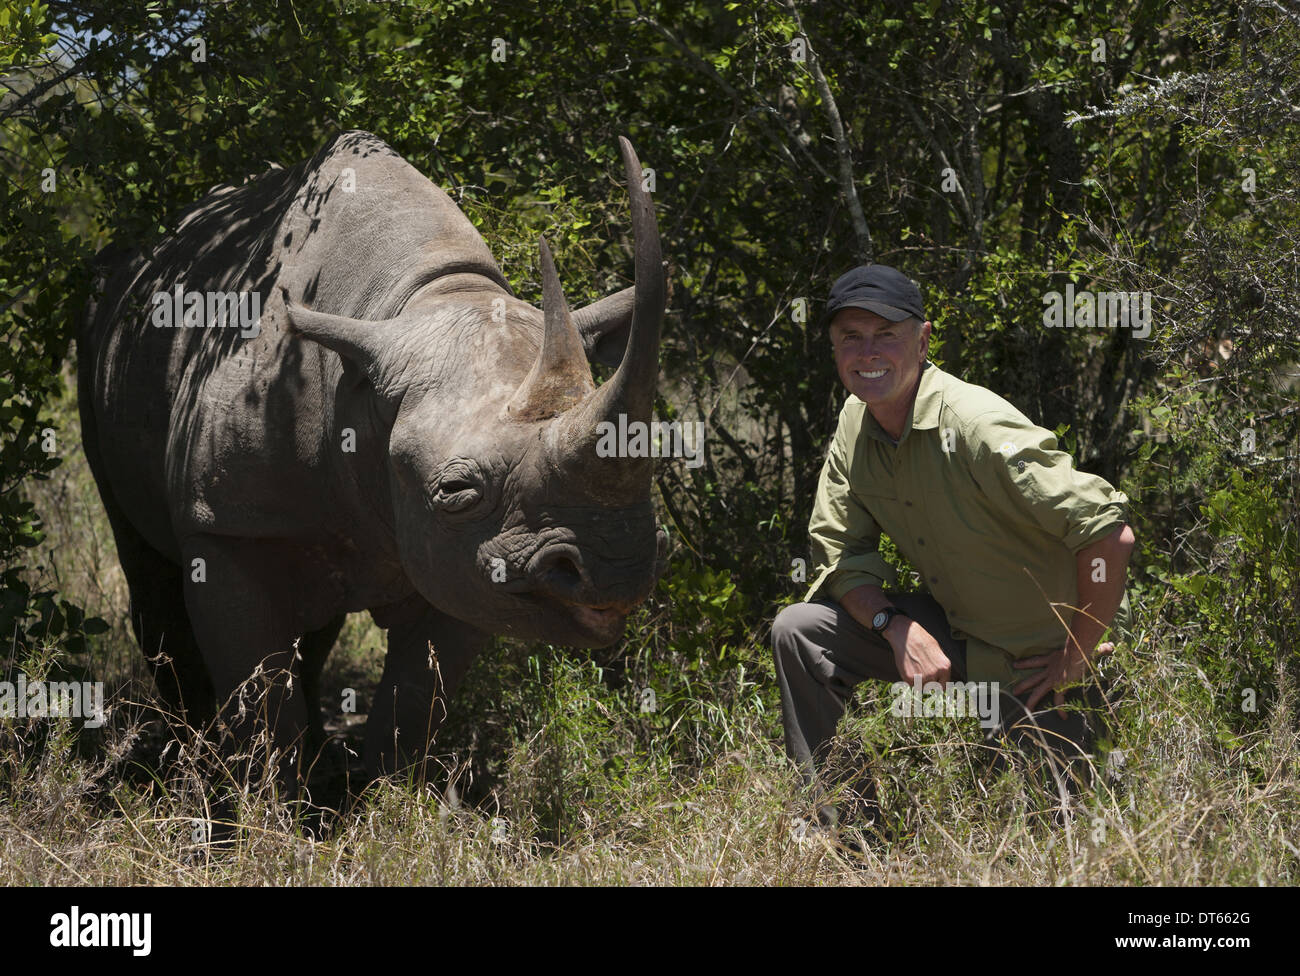 Art Wolfe, photographer kneeling next to a white rhinoceros in Kenya. - Stock Image